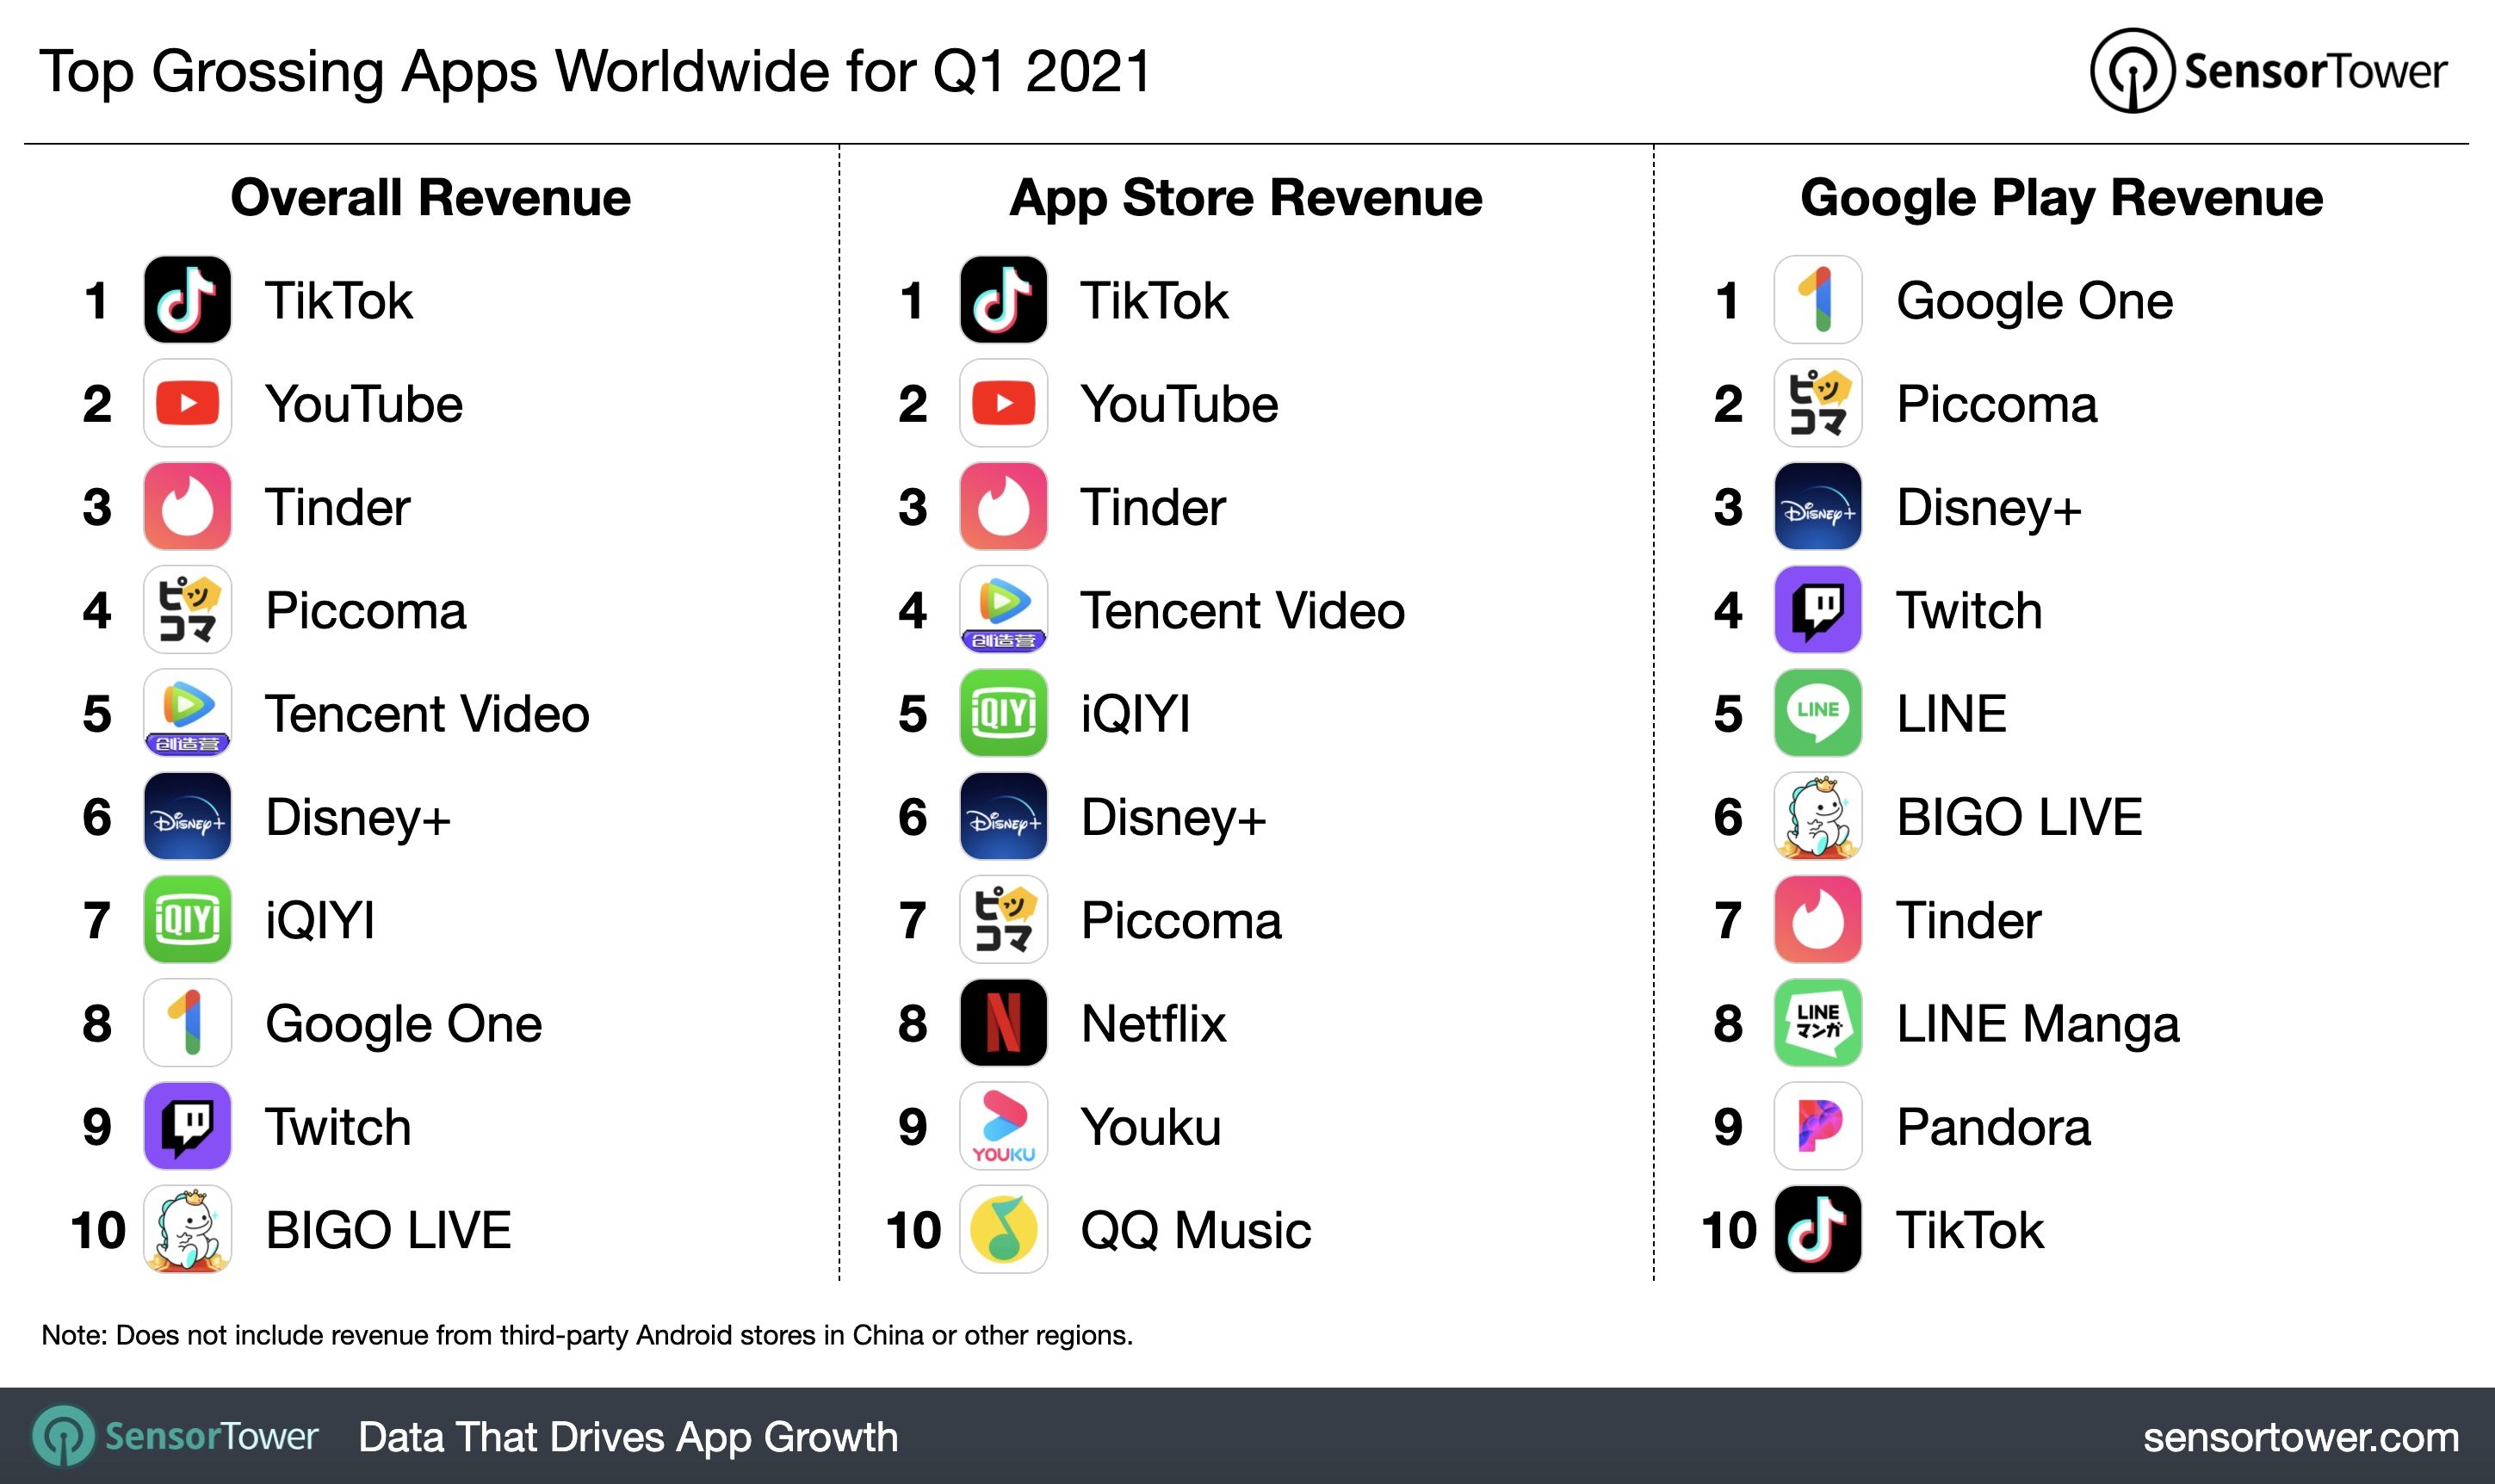 TikTok was the highest paying app of the two stores in 1Q21.